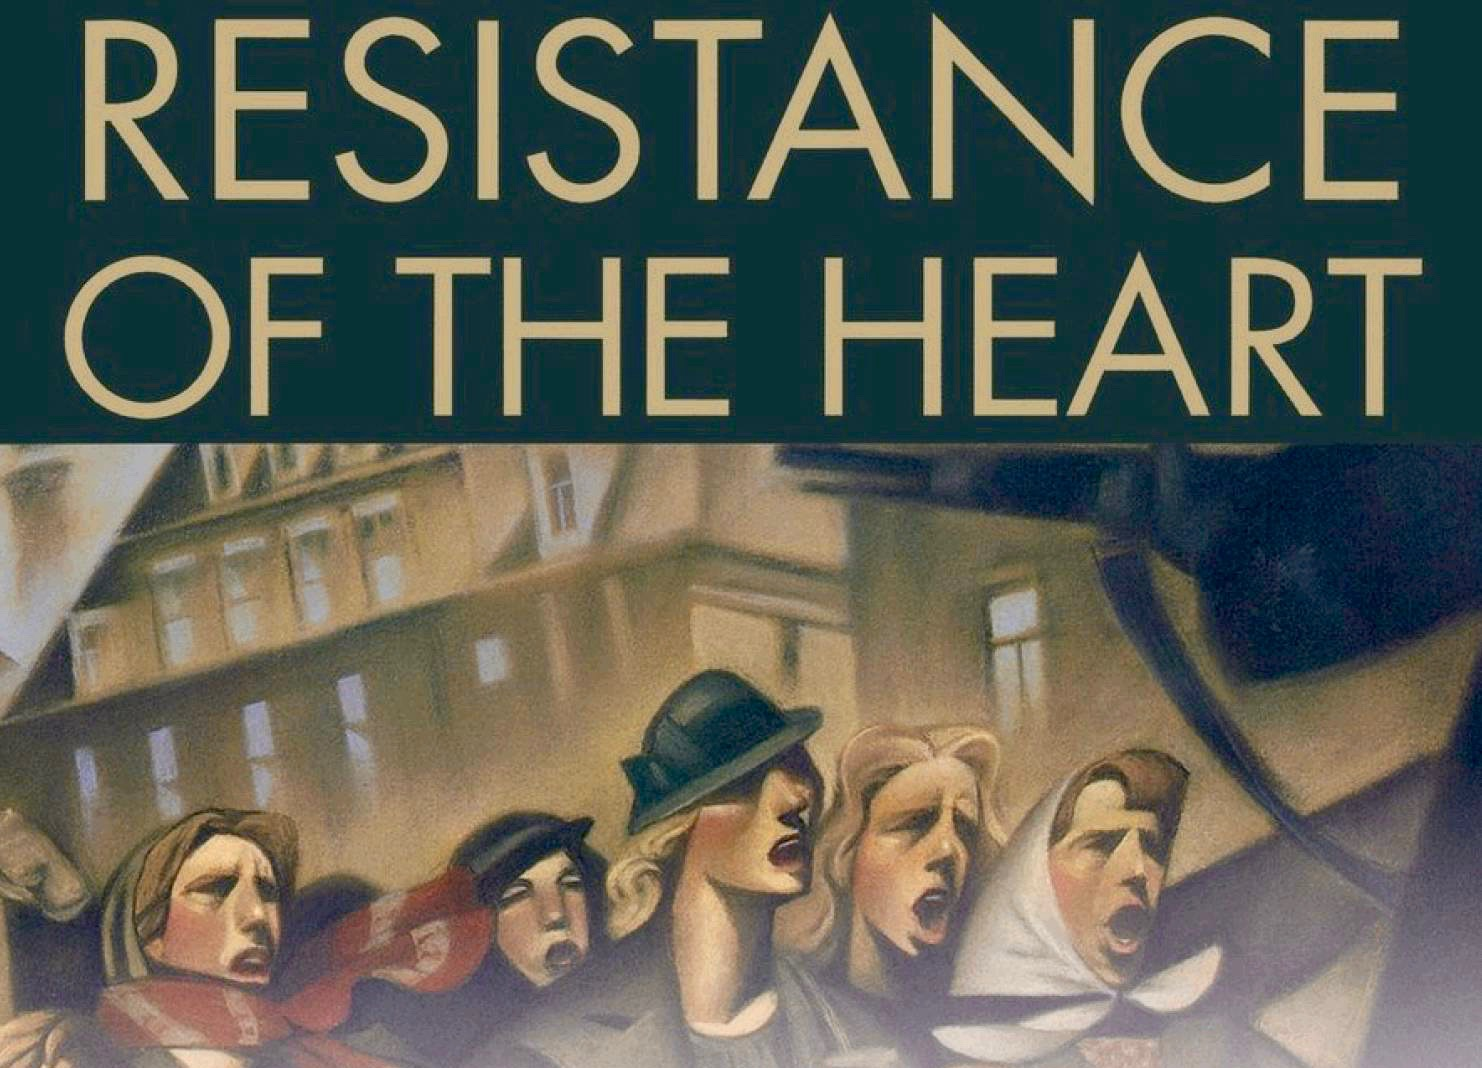 Resistance of the Heart